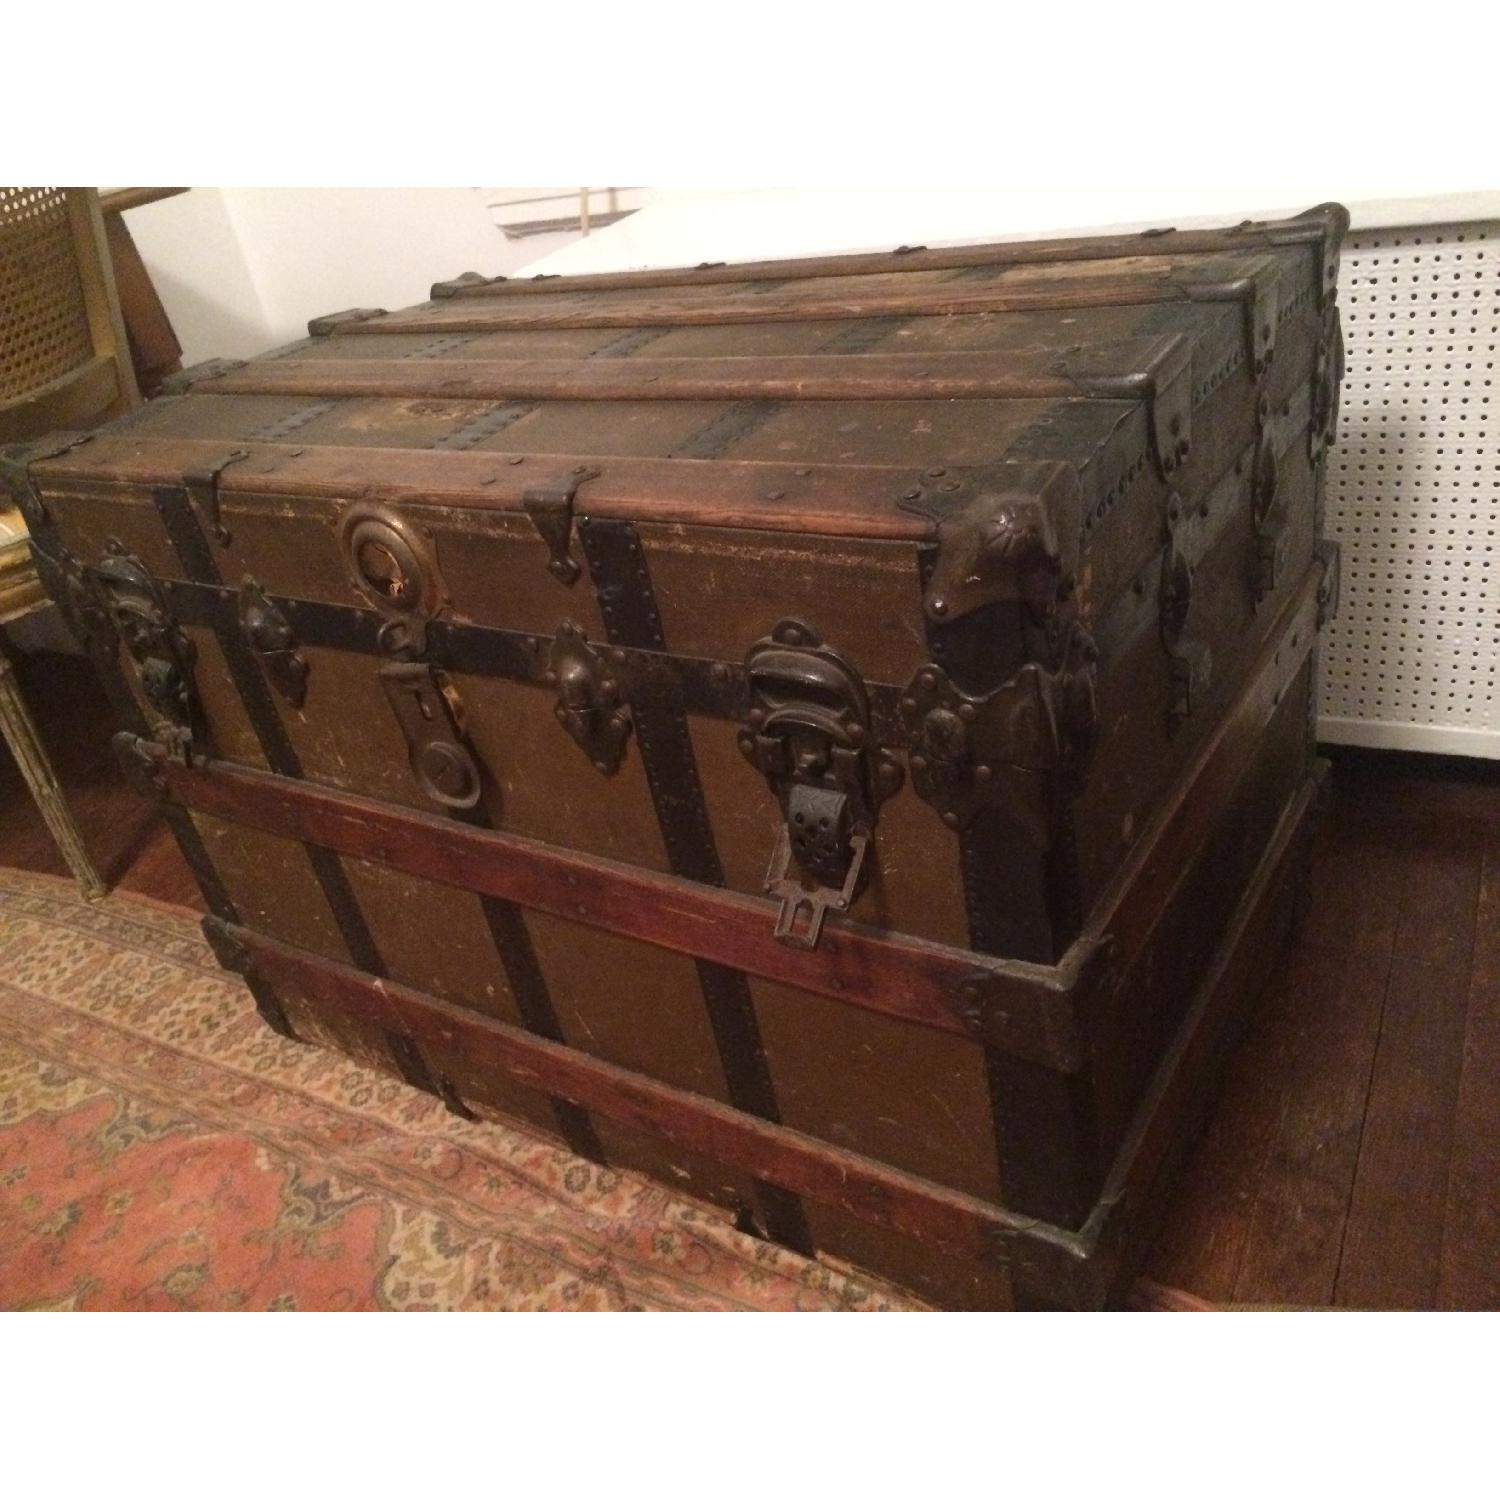 Antique Wood & Brass Shipping Trunk - image-7